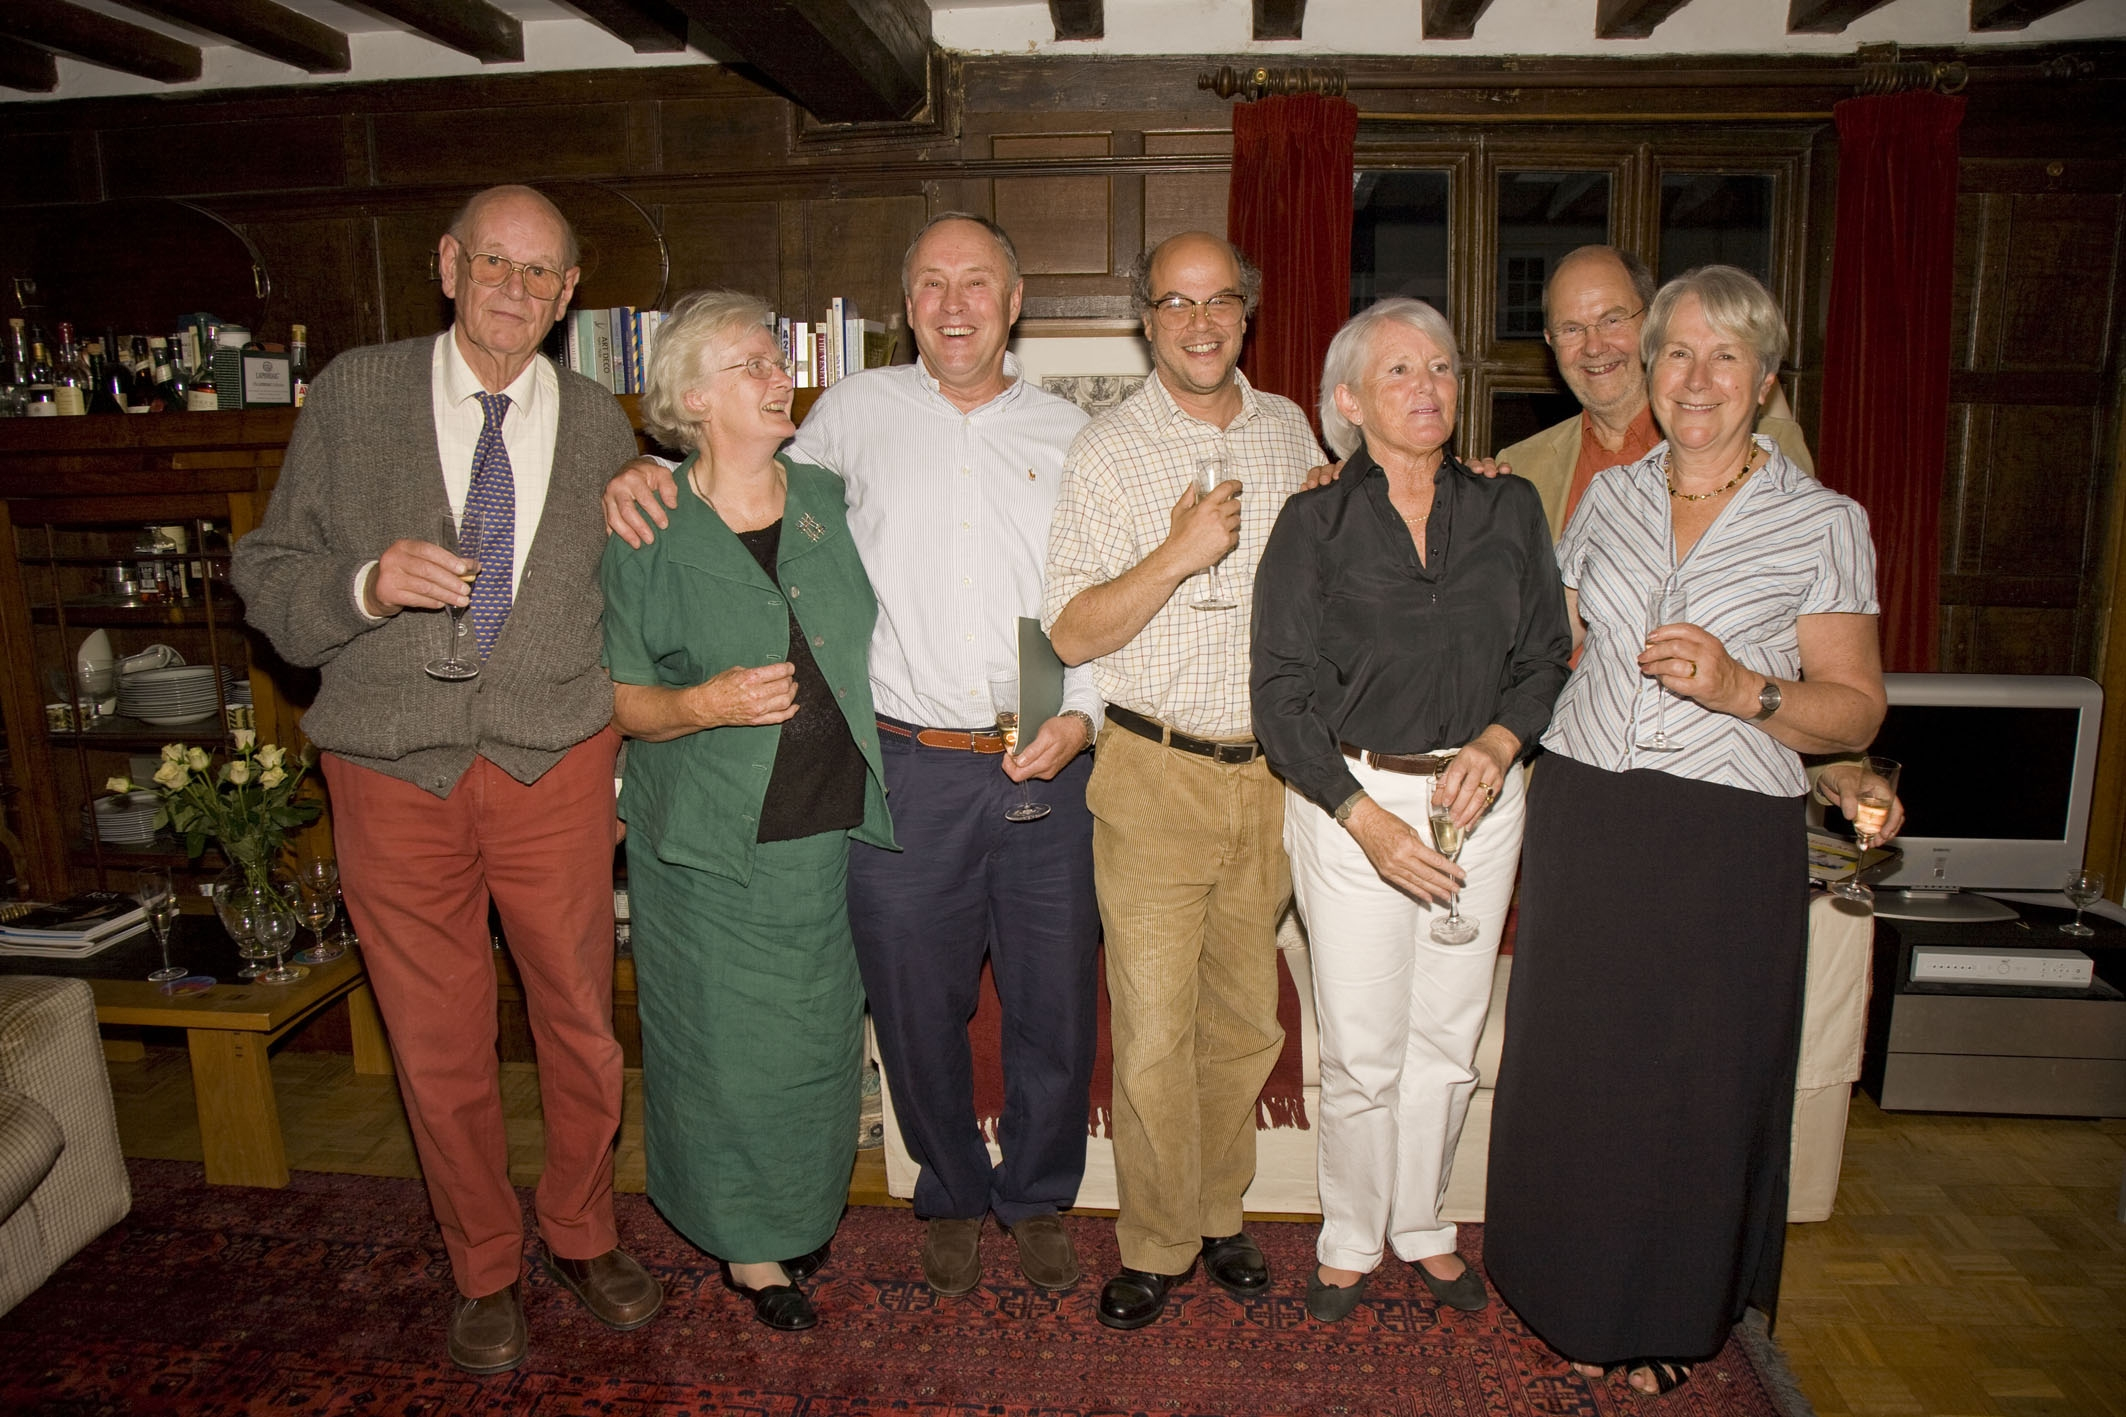 Editors of Meon Matters 1982 - 2005. L to R, Denys Ryder, Joan Rendle (widow of John), Chris Brough, Marc Atkinson, Sally-Anne Brough, Michael & Tricia Blakstad